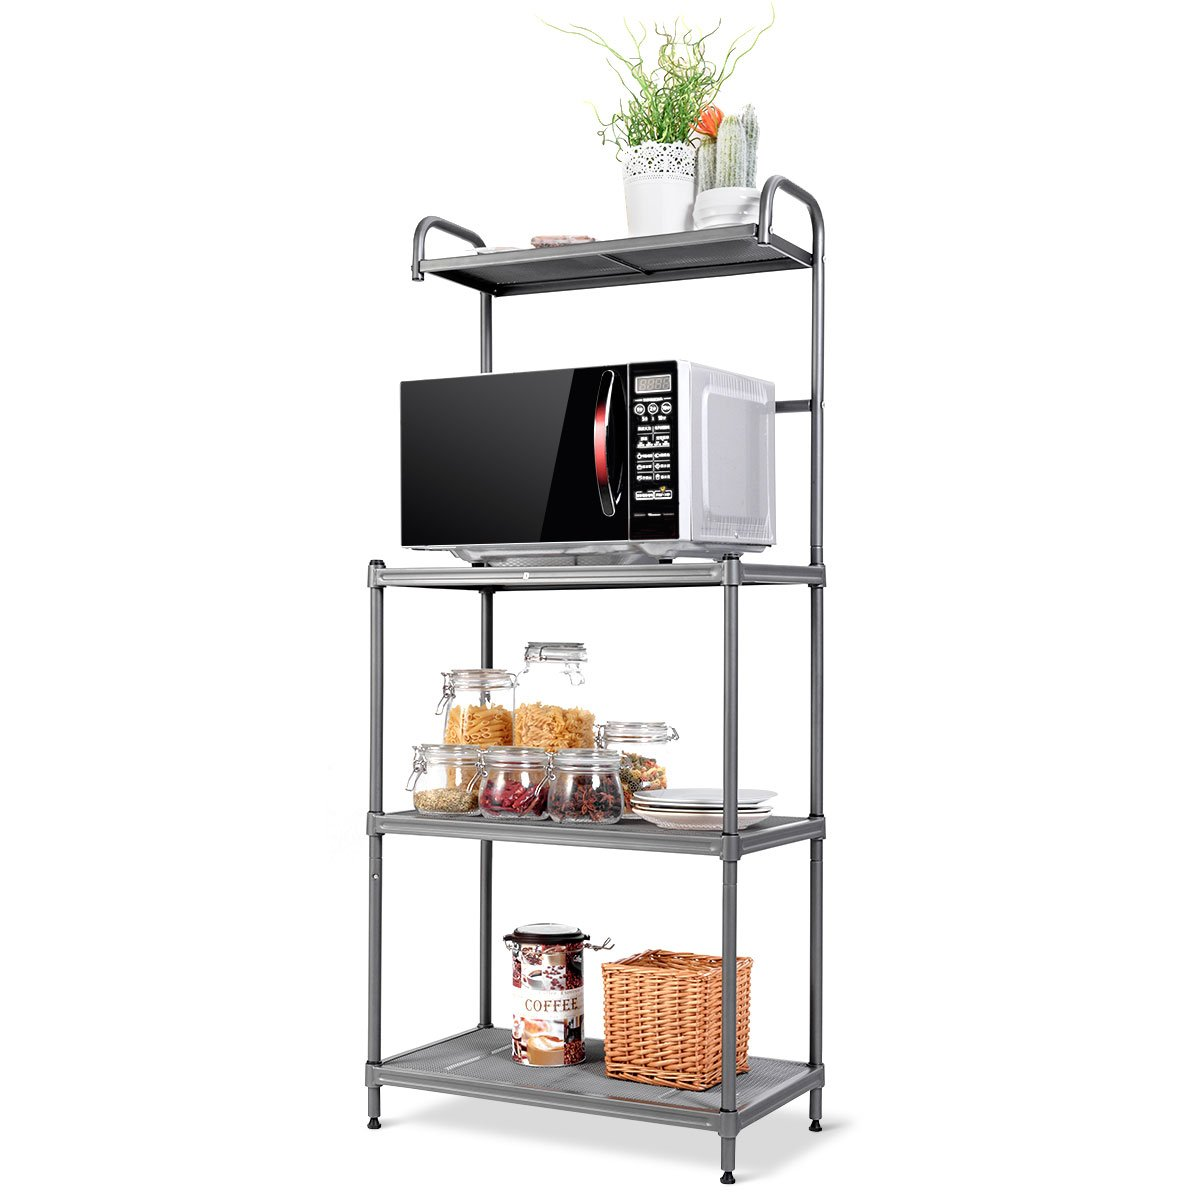 Giantex 4-Tier Kitchen Microwave Storage Rack Oven Stand Strong Mesh Wire Metal Shelves Free Standing Baker's Rack Shelving Utility Unit, 23.5'' Lx14 Wx54 H (Silver) by Giantex